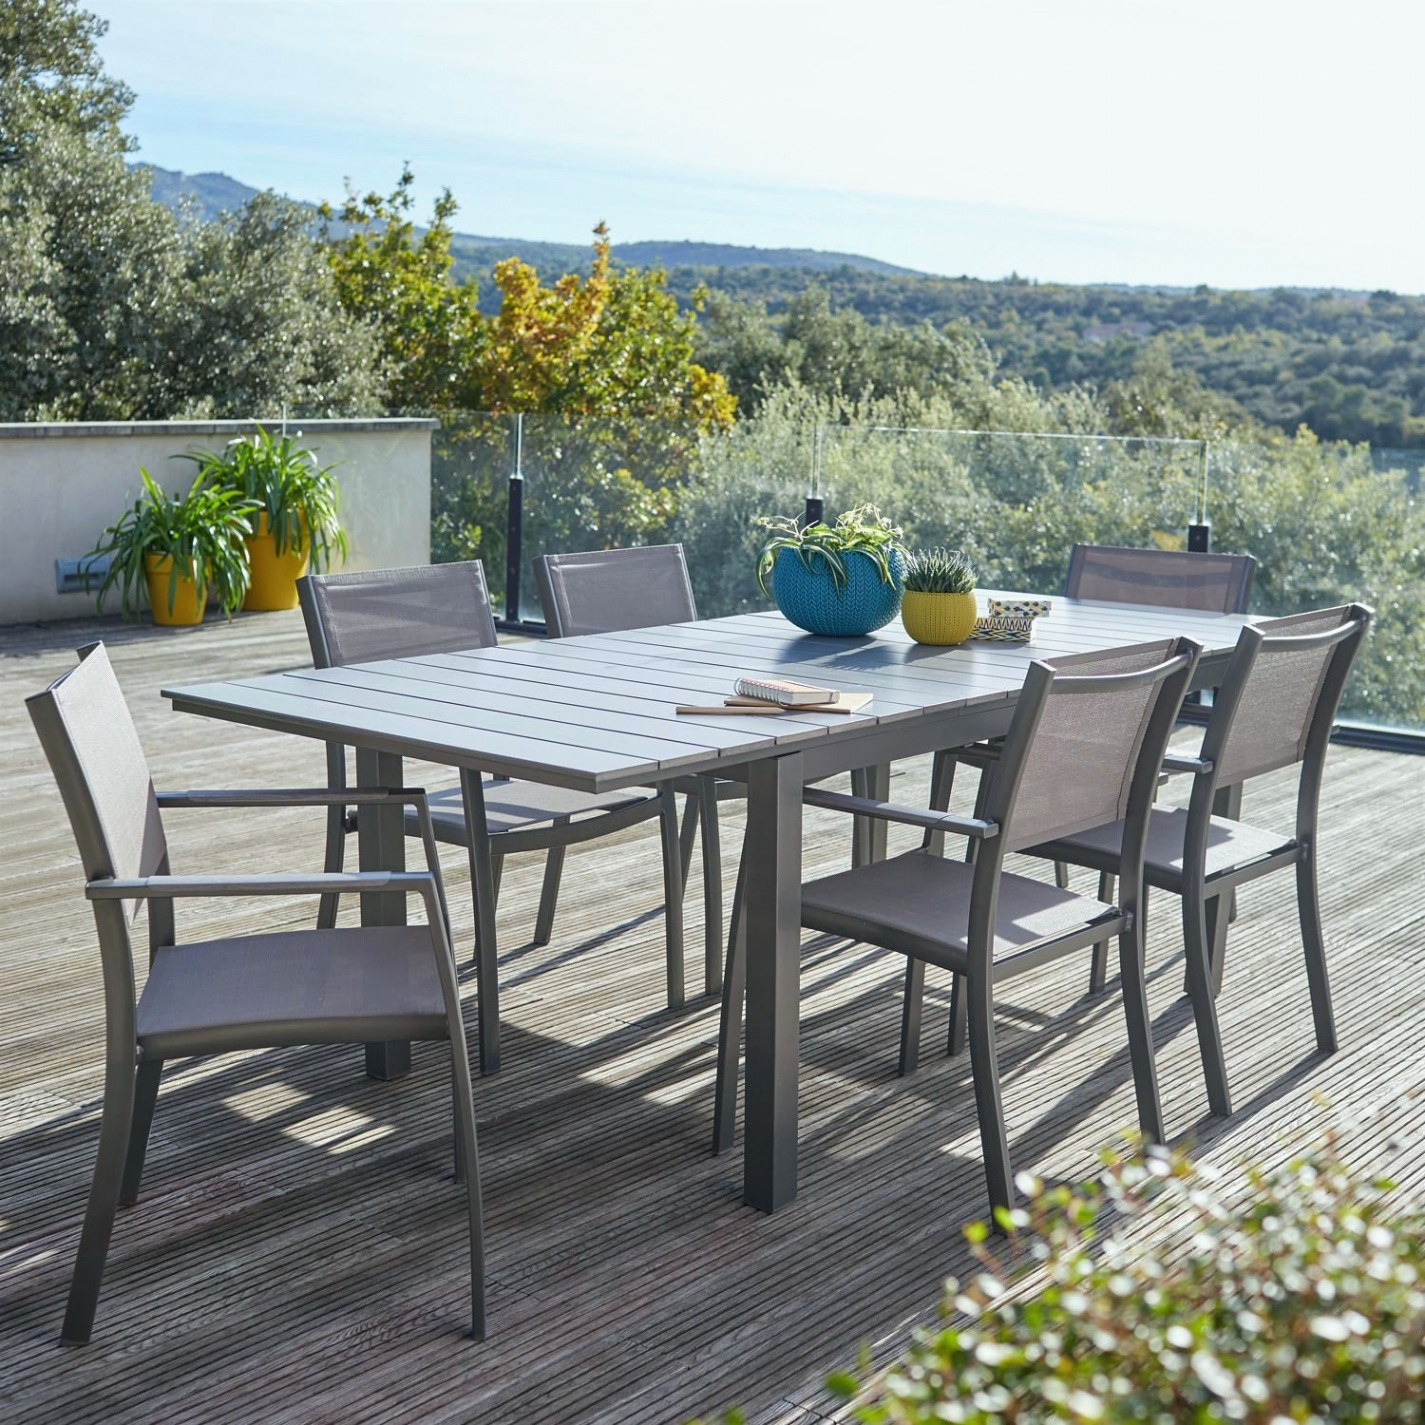 table basse jardin castorama inspire salon jardin metal table et fauteuils chaise violet castorama en pas of table basse jardin castorama